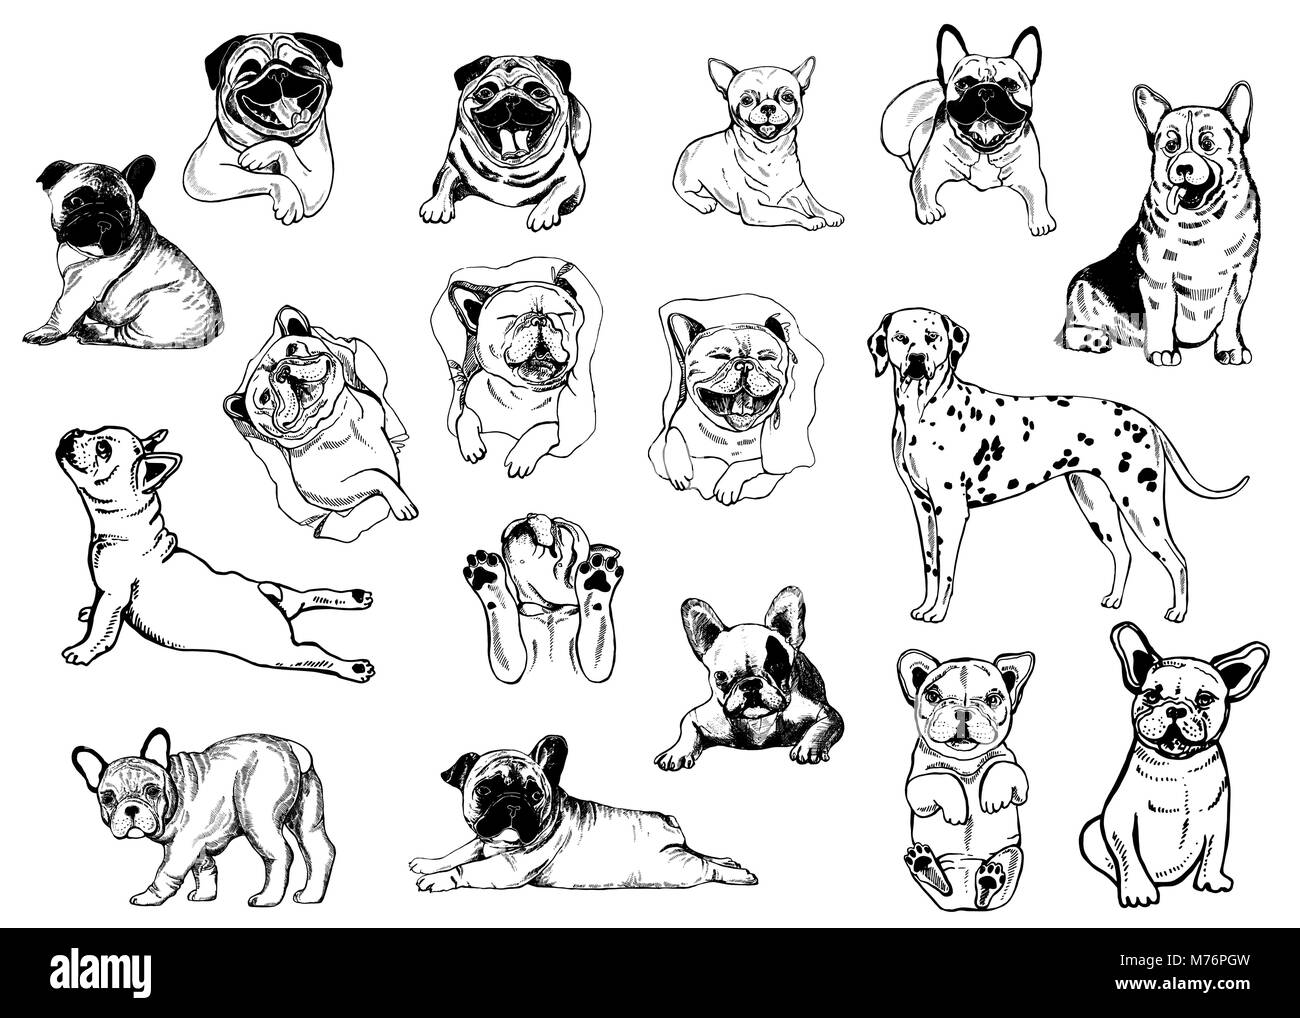 Set Of Hand Drawn Sketch Style Dogs Isolated On White Background